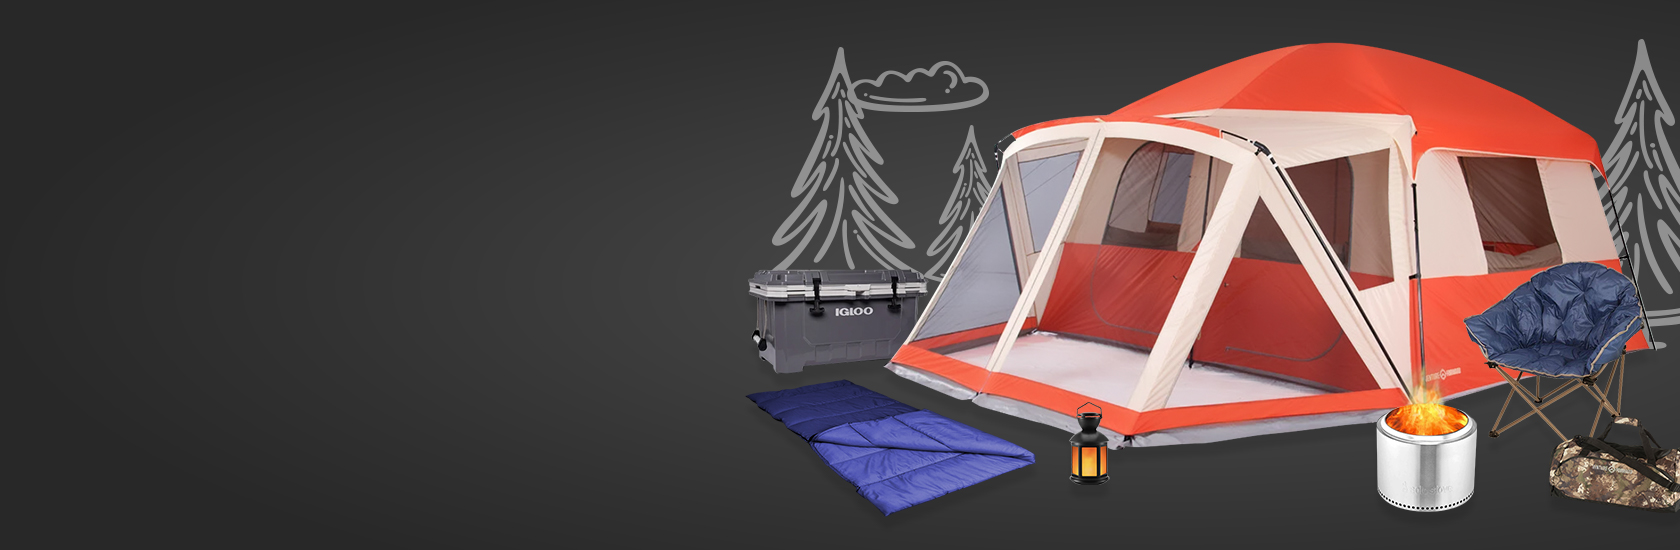 Back to Camping - Enhance your next outing & save up to 60% on Sleeping Bags, Tents, Cots, Firepits & More